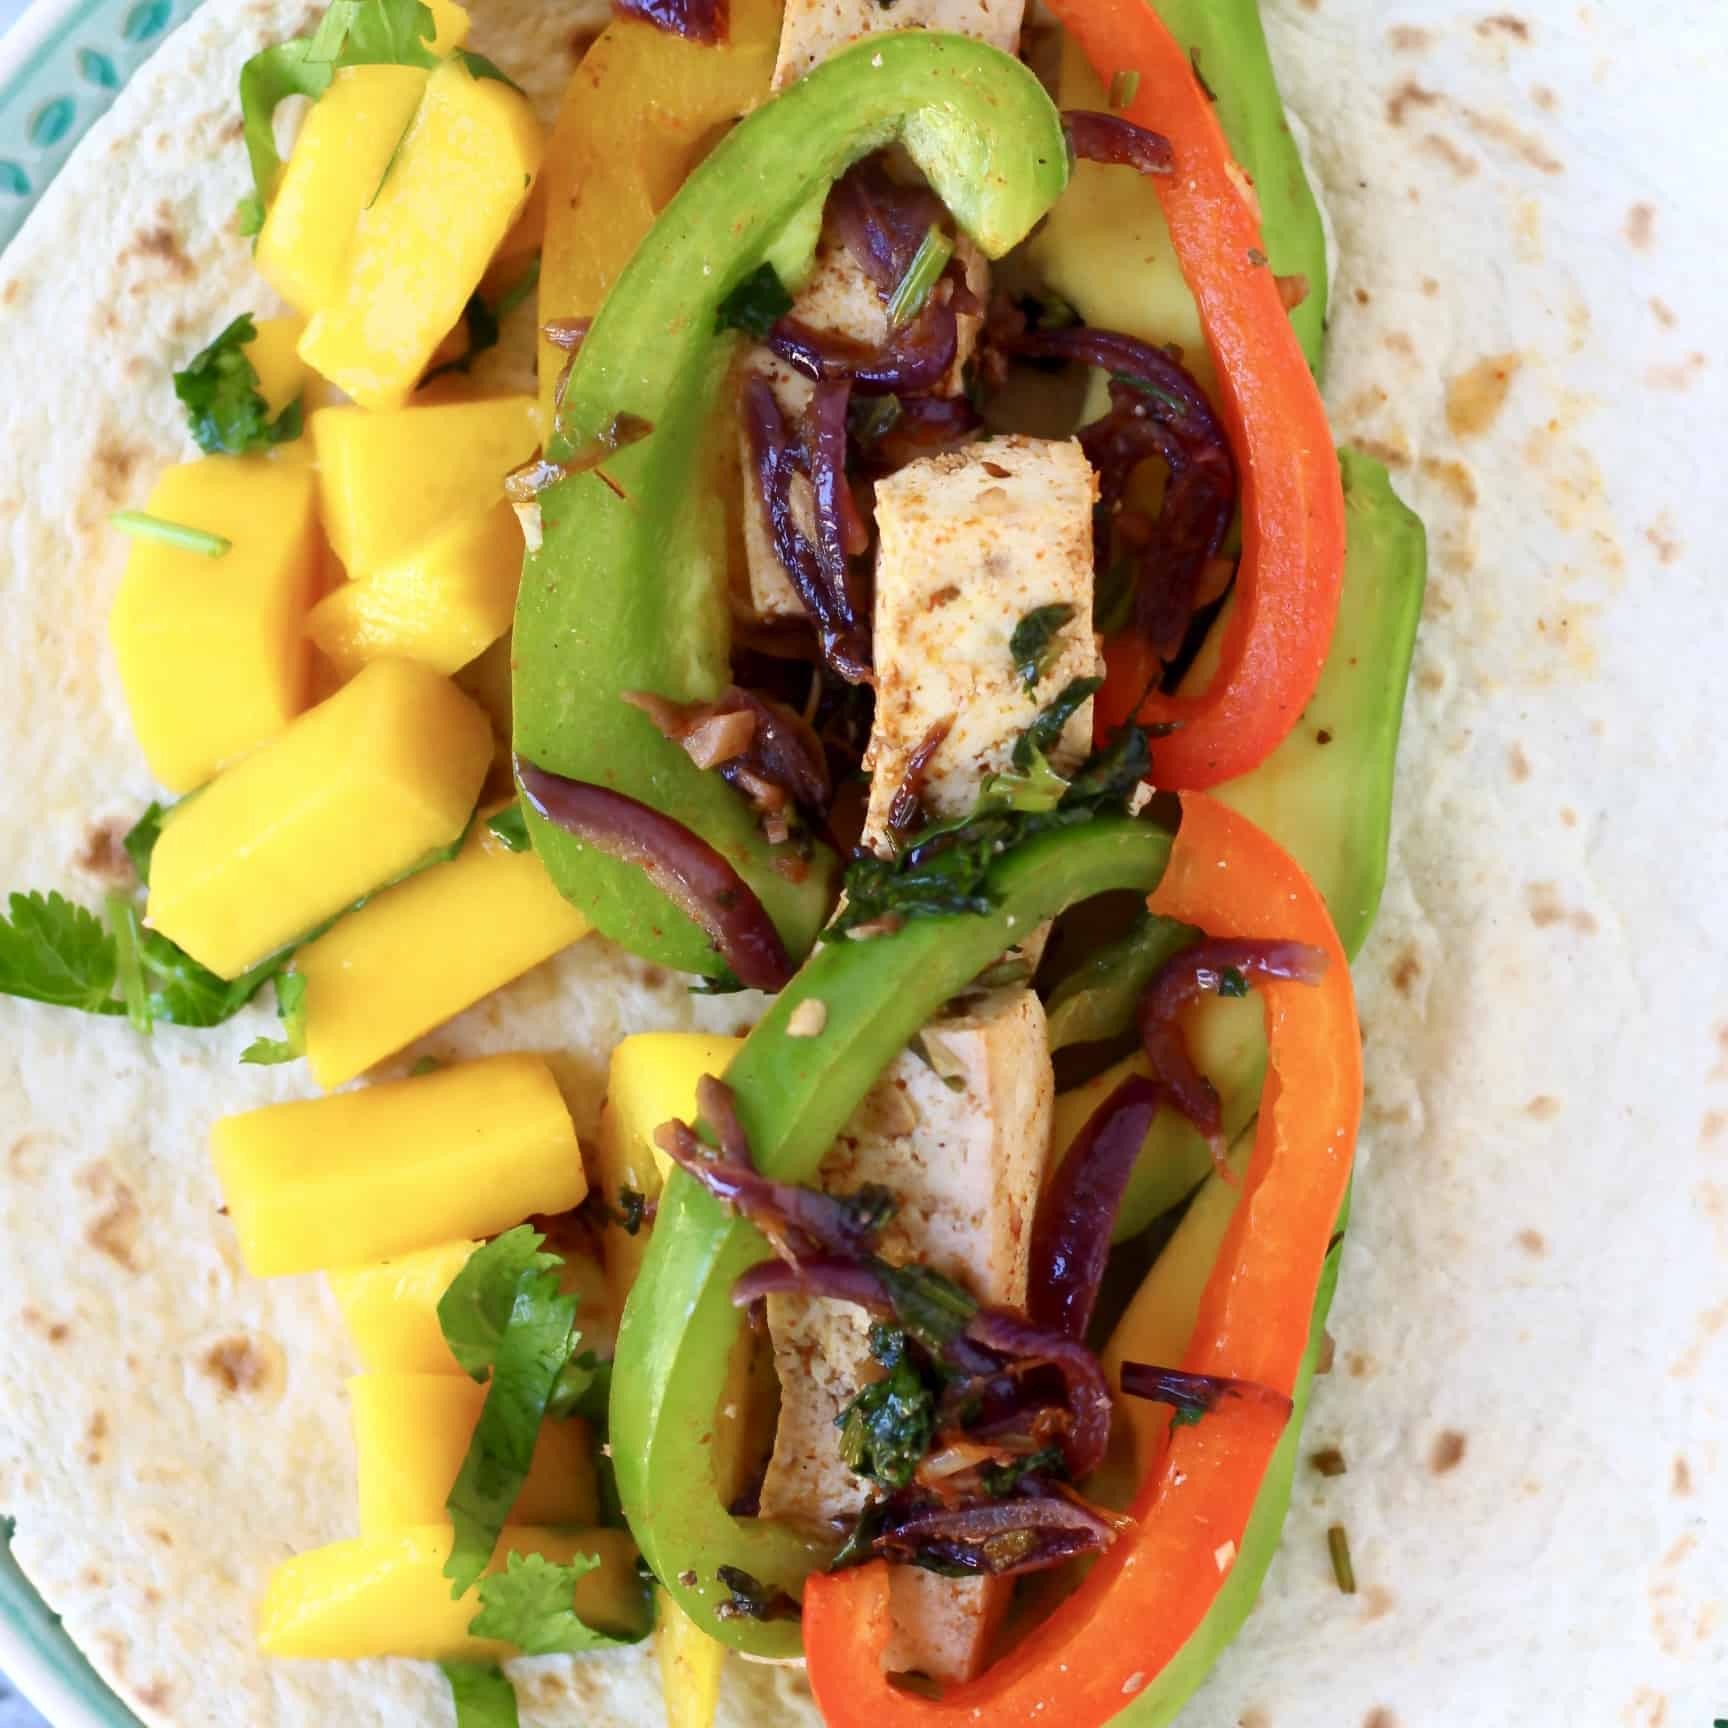 Tofu, sliced peppers and diced mango on a tortilla on a blue plate